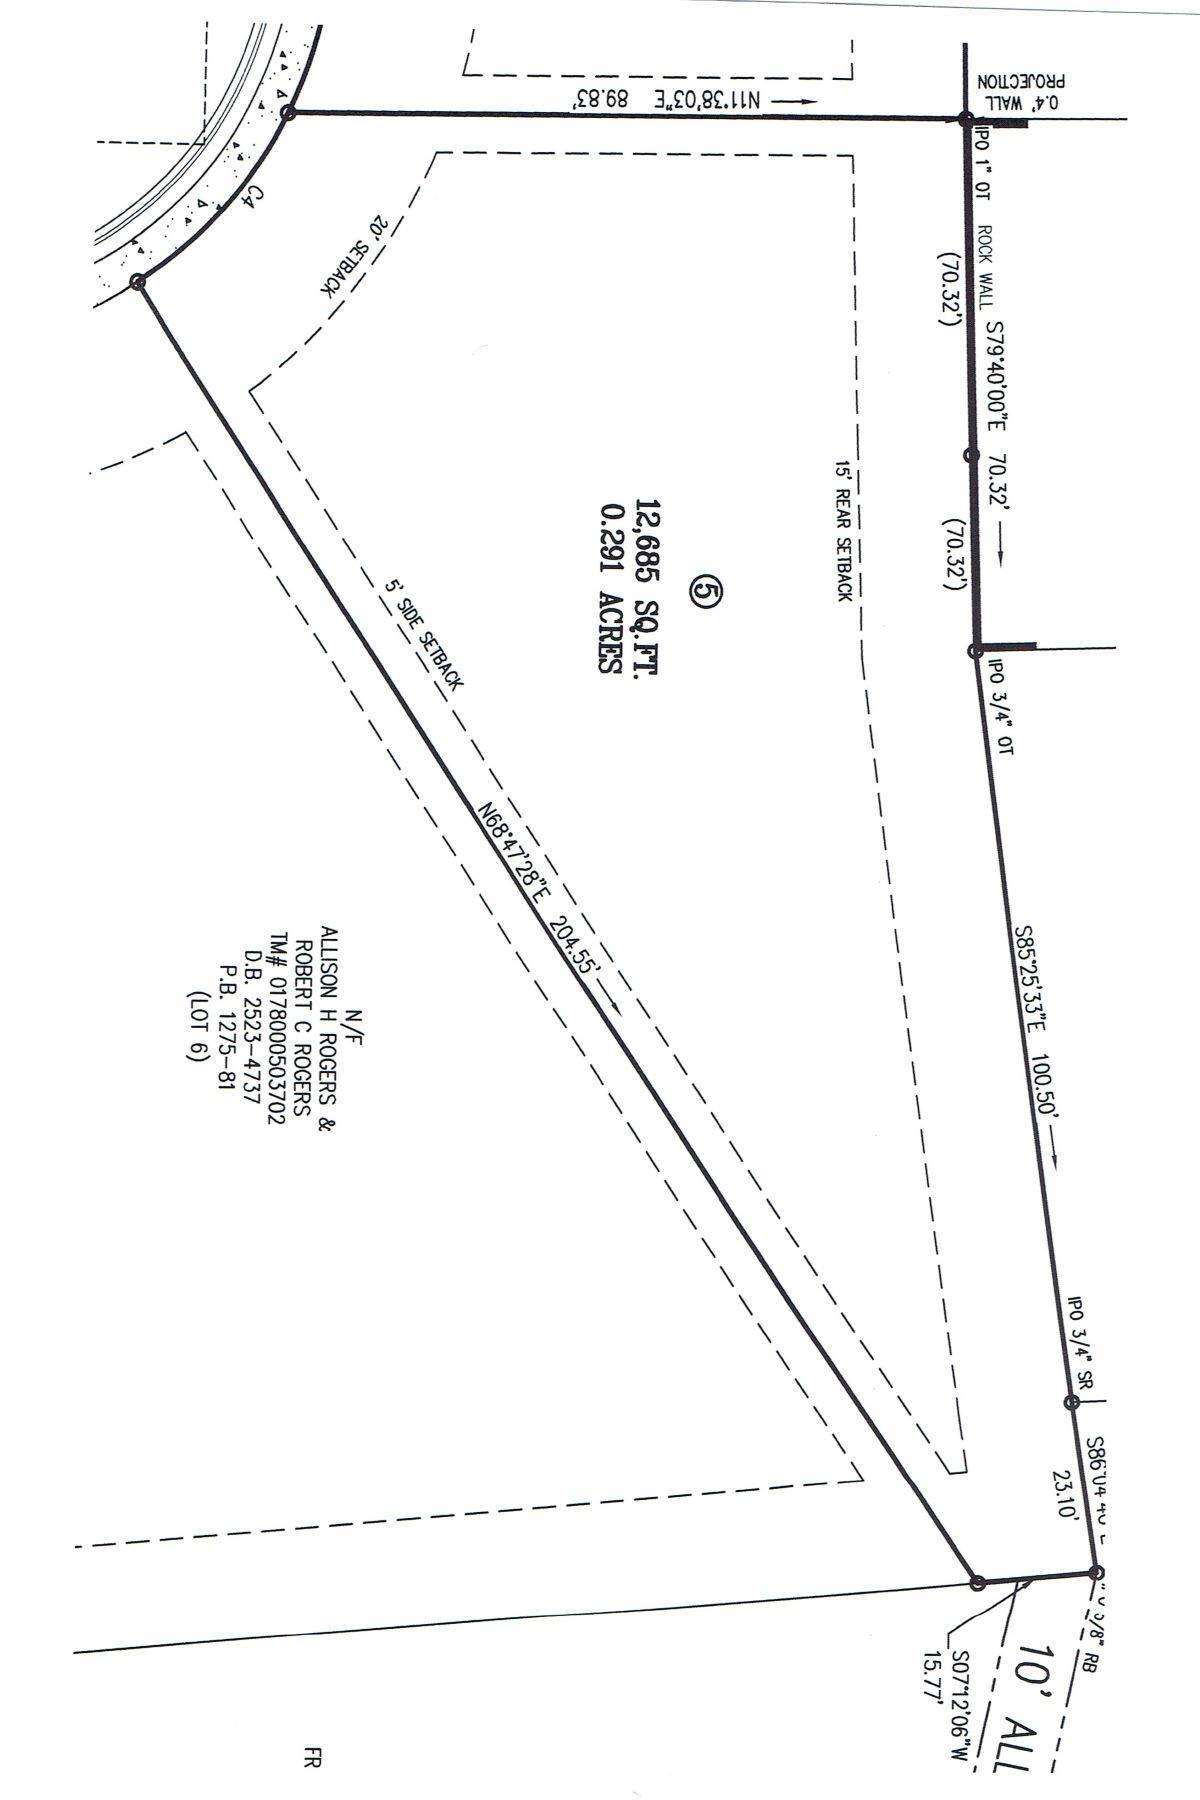 Land for Sale at 14 Henigan Lane - One of Two Remaining Lots! 14 Henigan Lane, Lot 5, Greenville, SC 29609